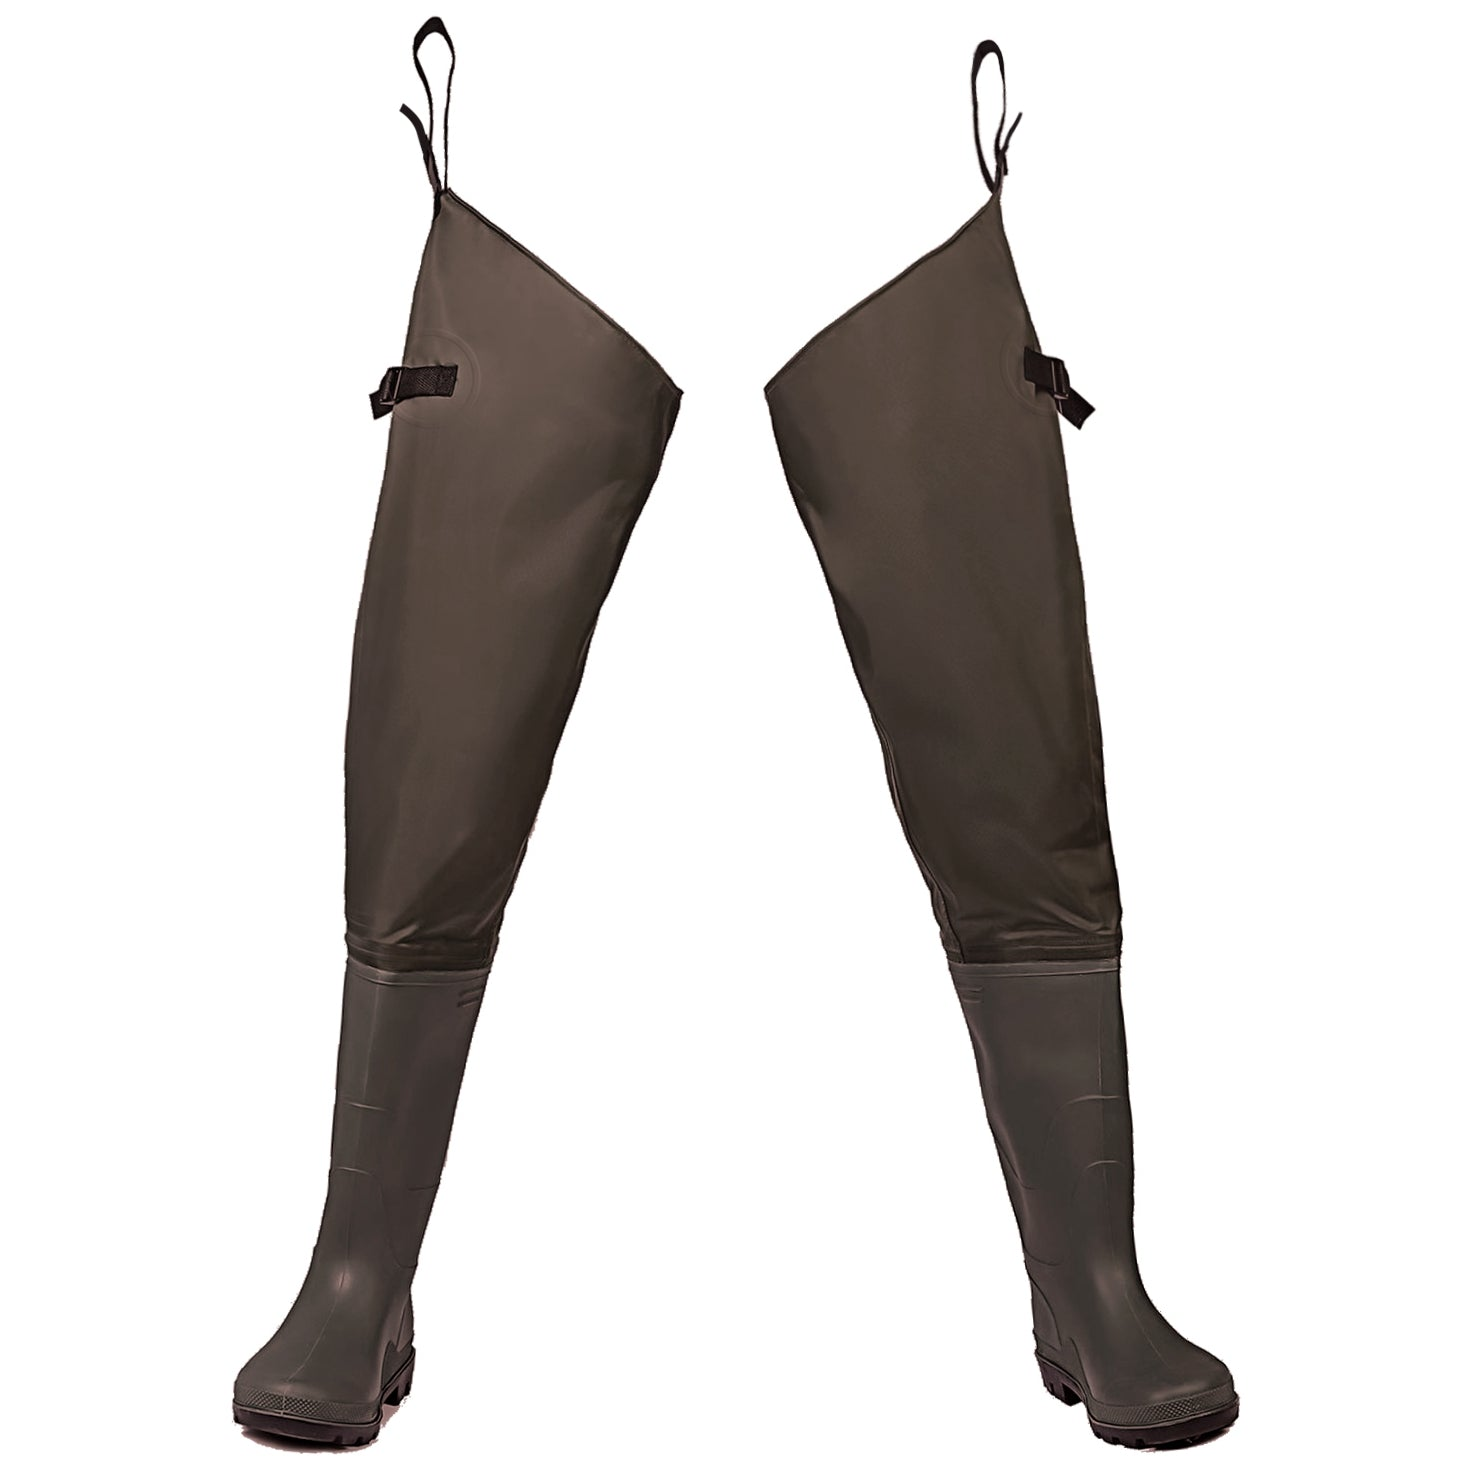 Toandon Fishing Hip Waders with Boots for Adults - Brown